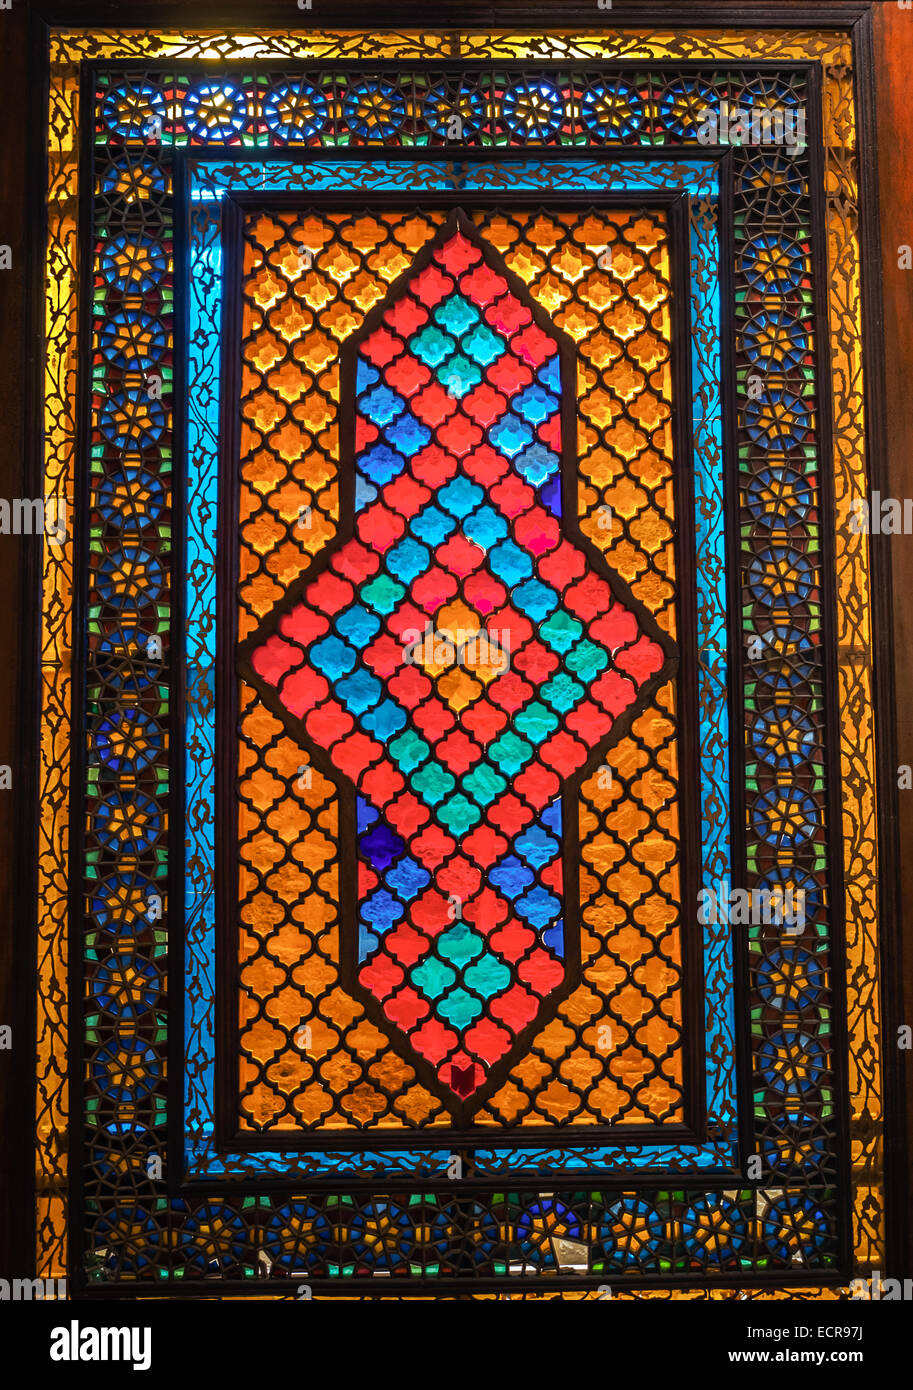 Stained glass in Shirvanshah's Palace, Baku, Azerbaijan - Stock Image